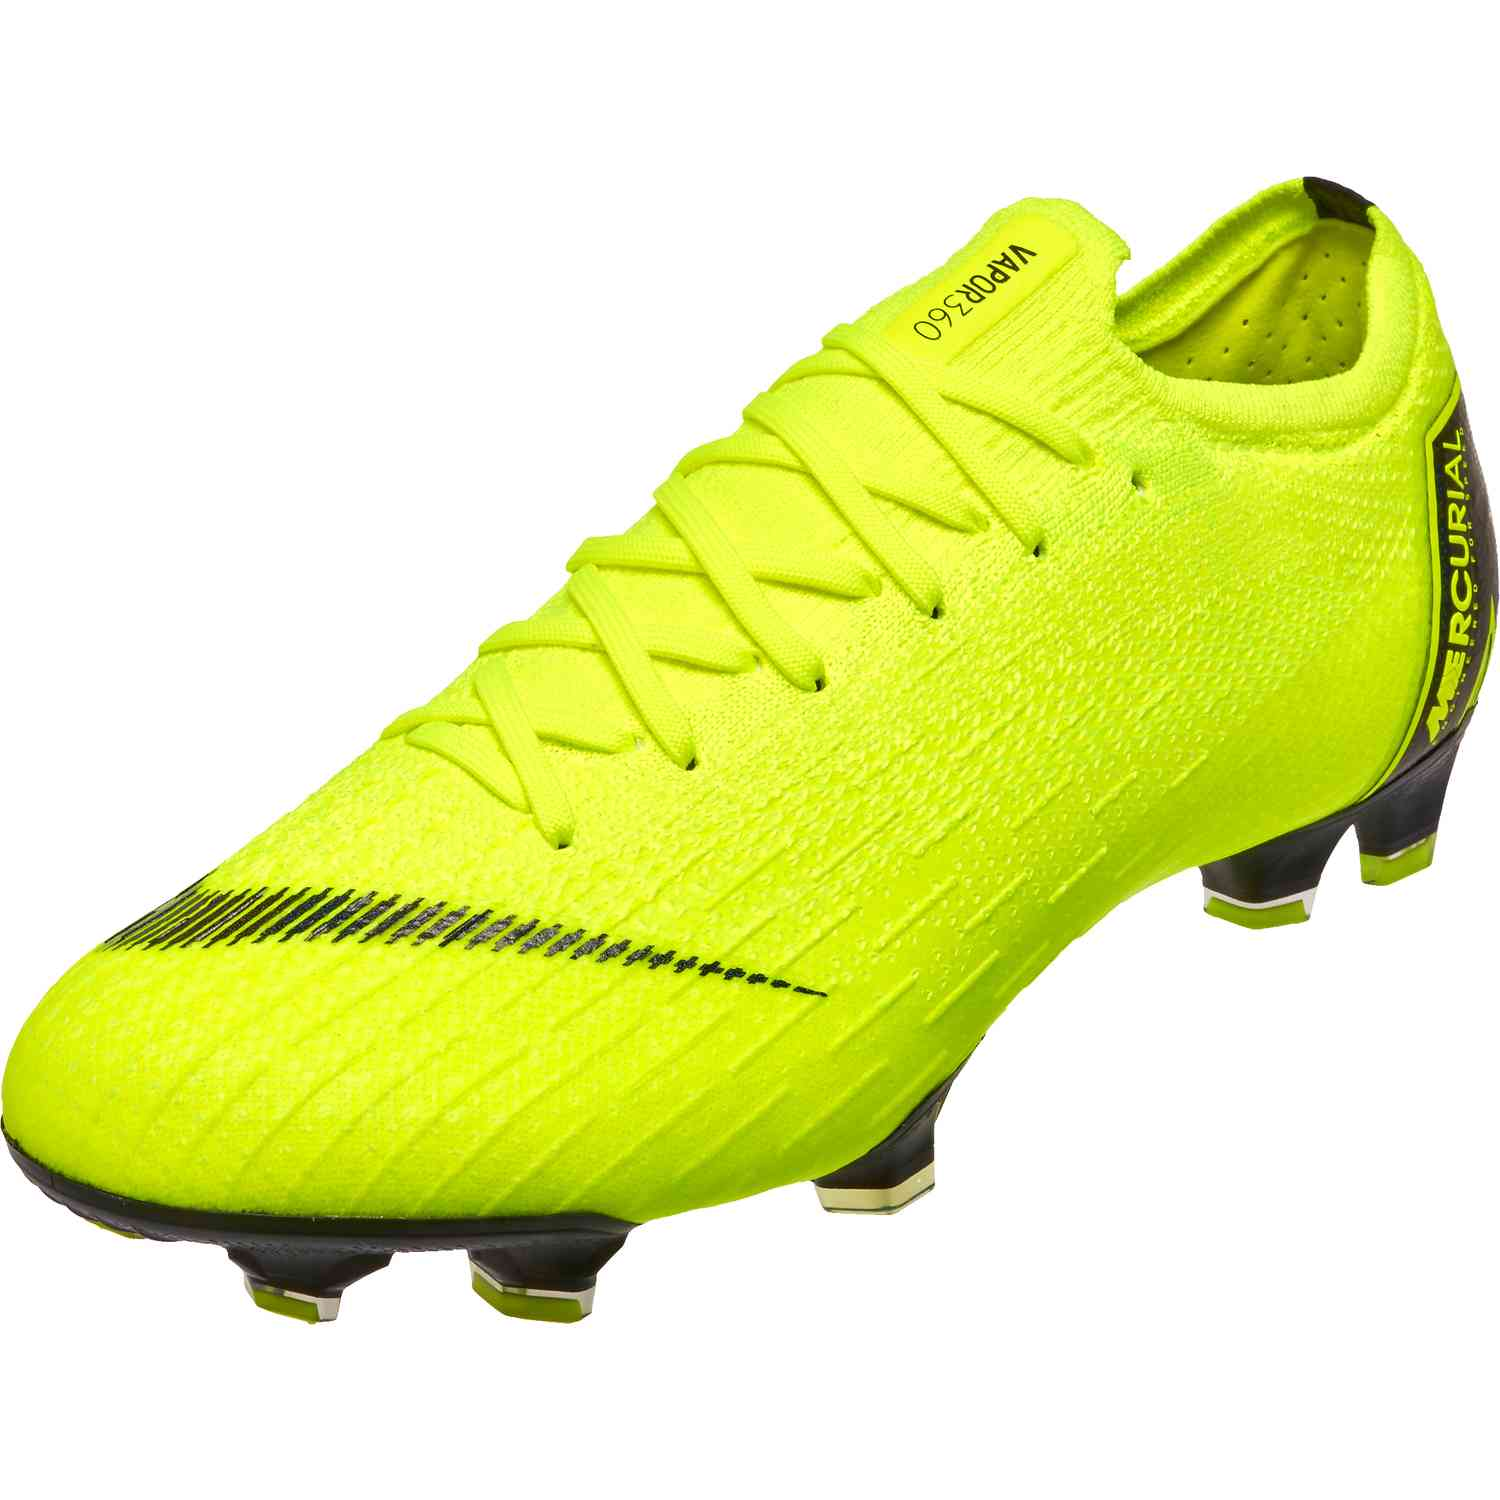 adae458ec Nike Mercurial Vapor Elite - New Wave Chapter 1 - SoccerPro.com